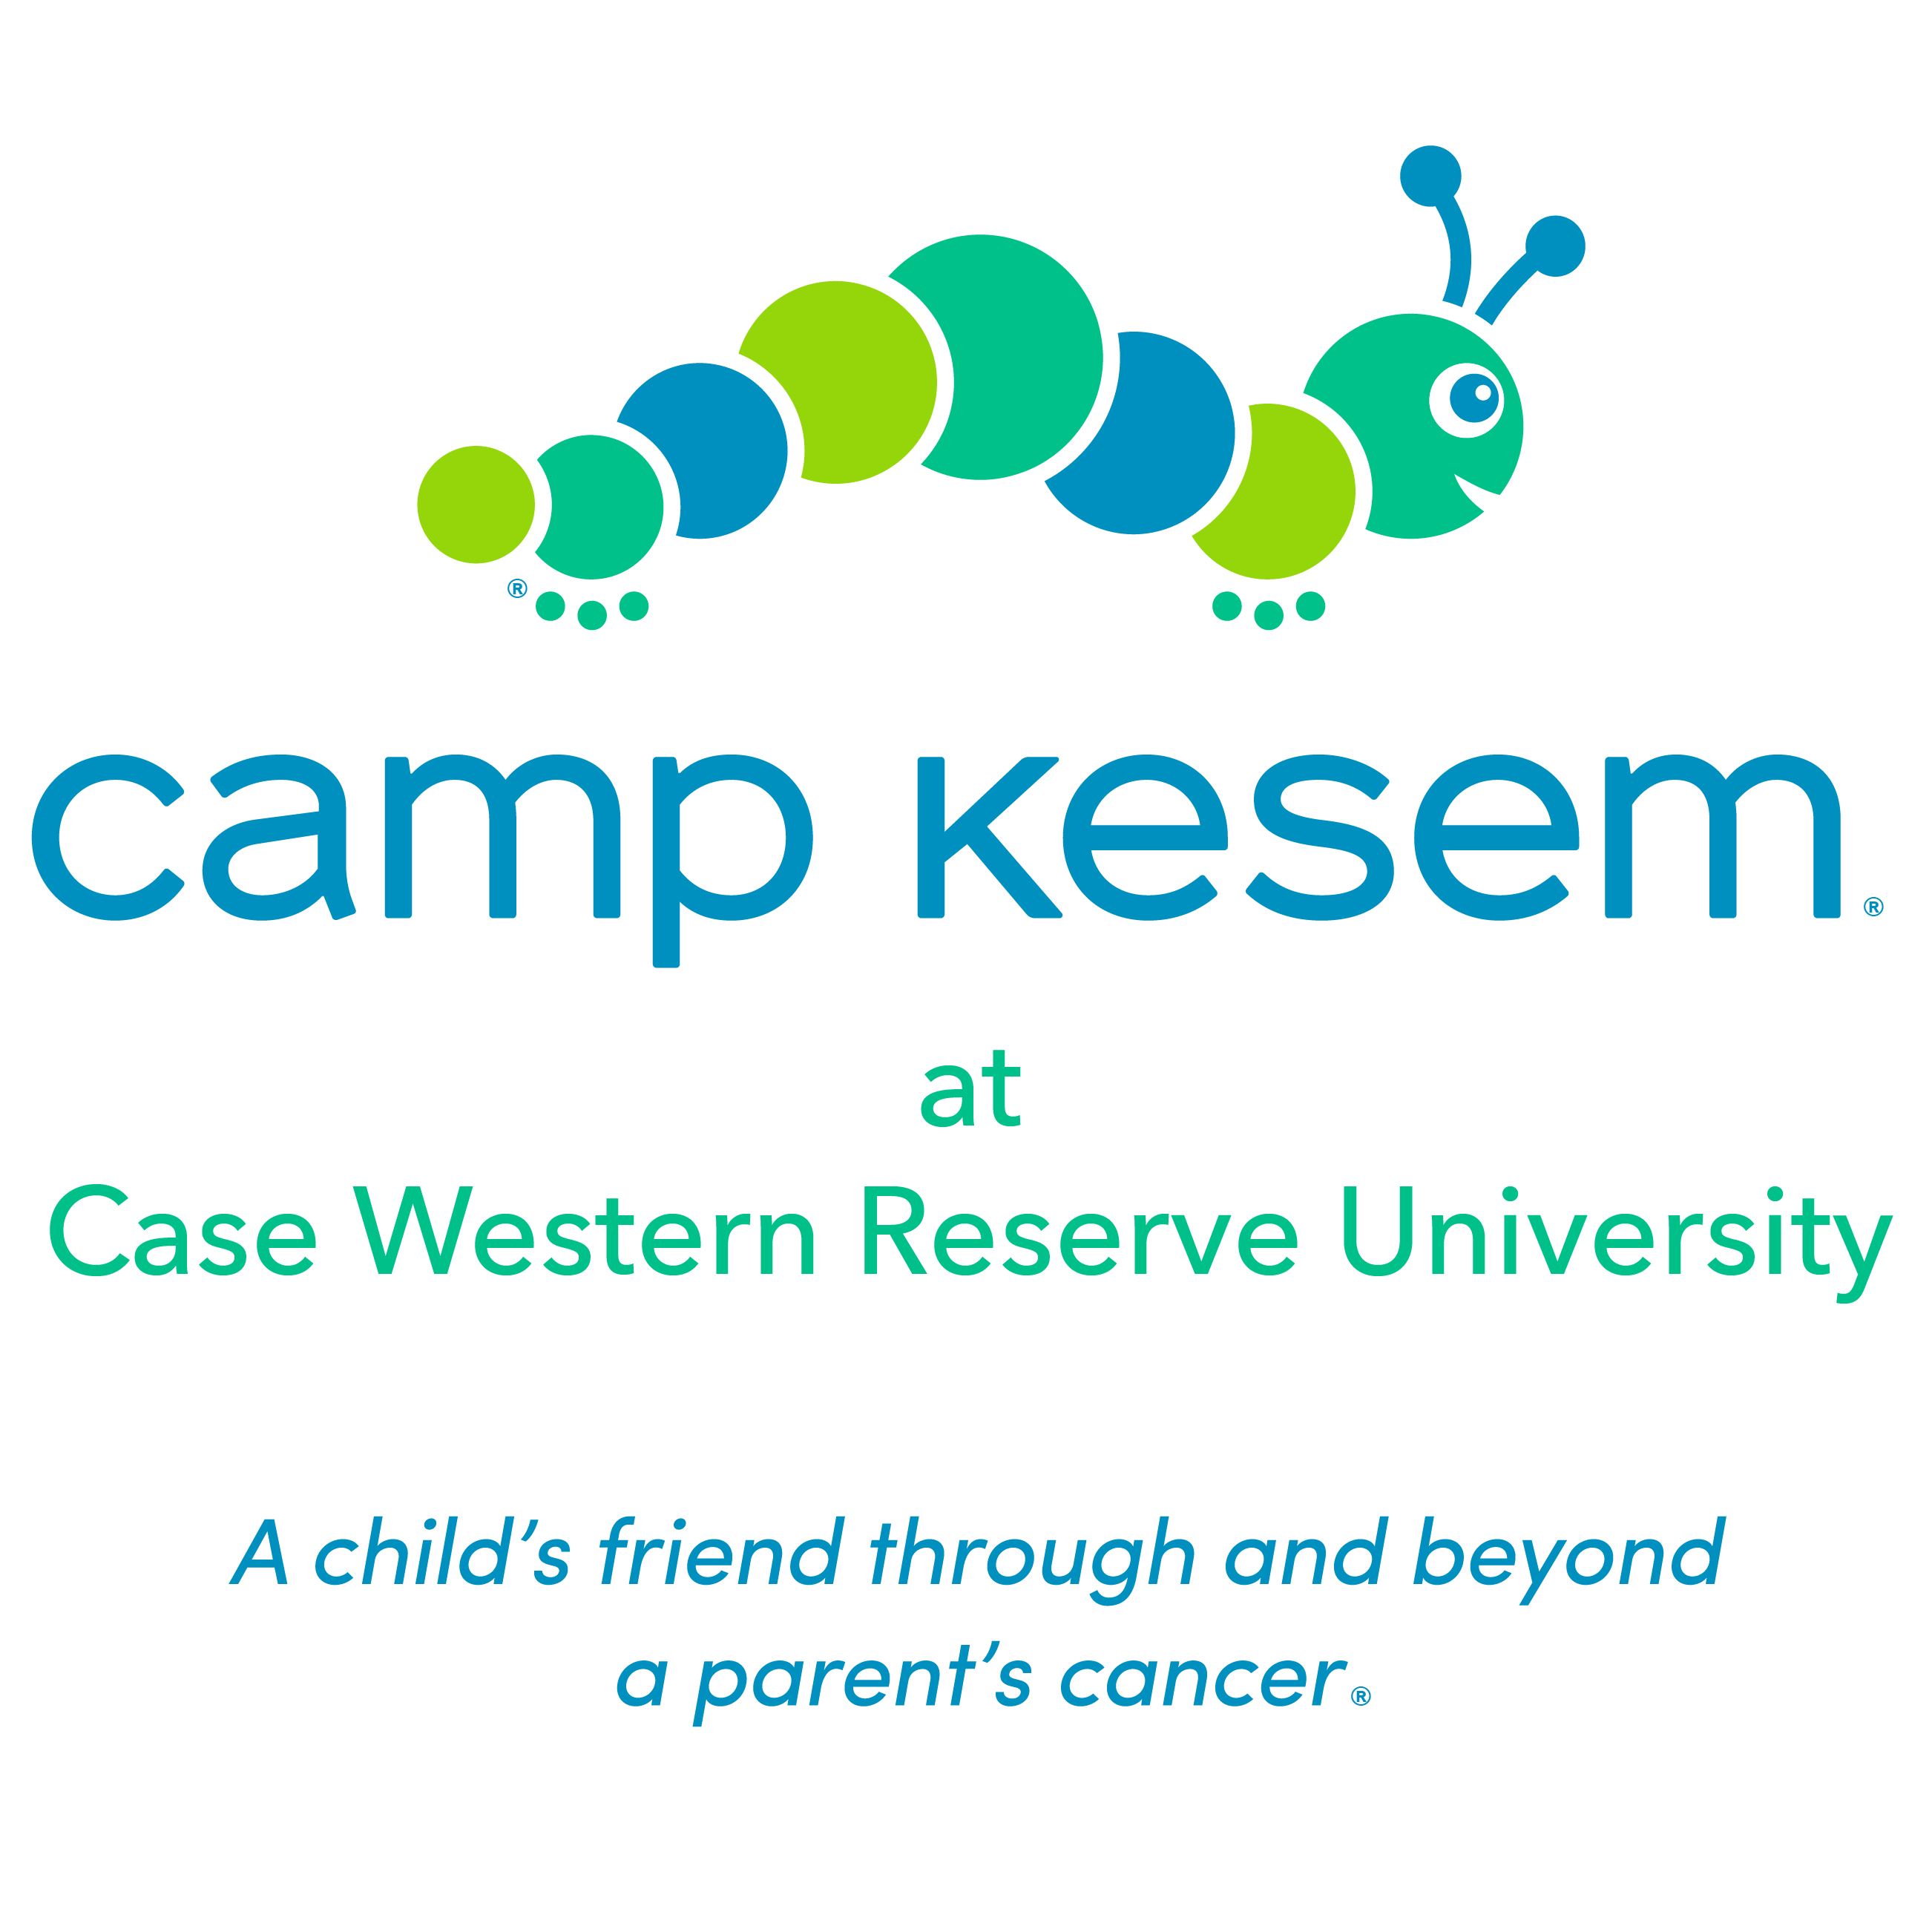 Camp Kesem at Case Western Reserve University